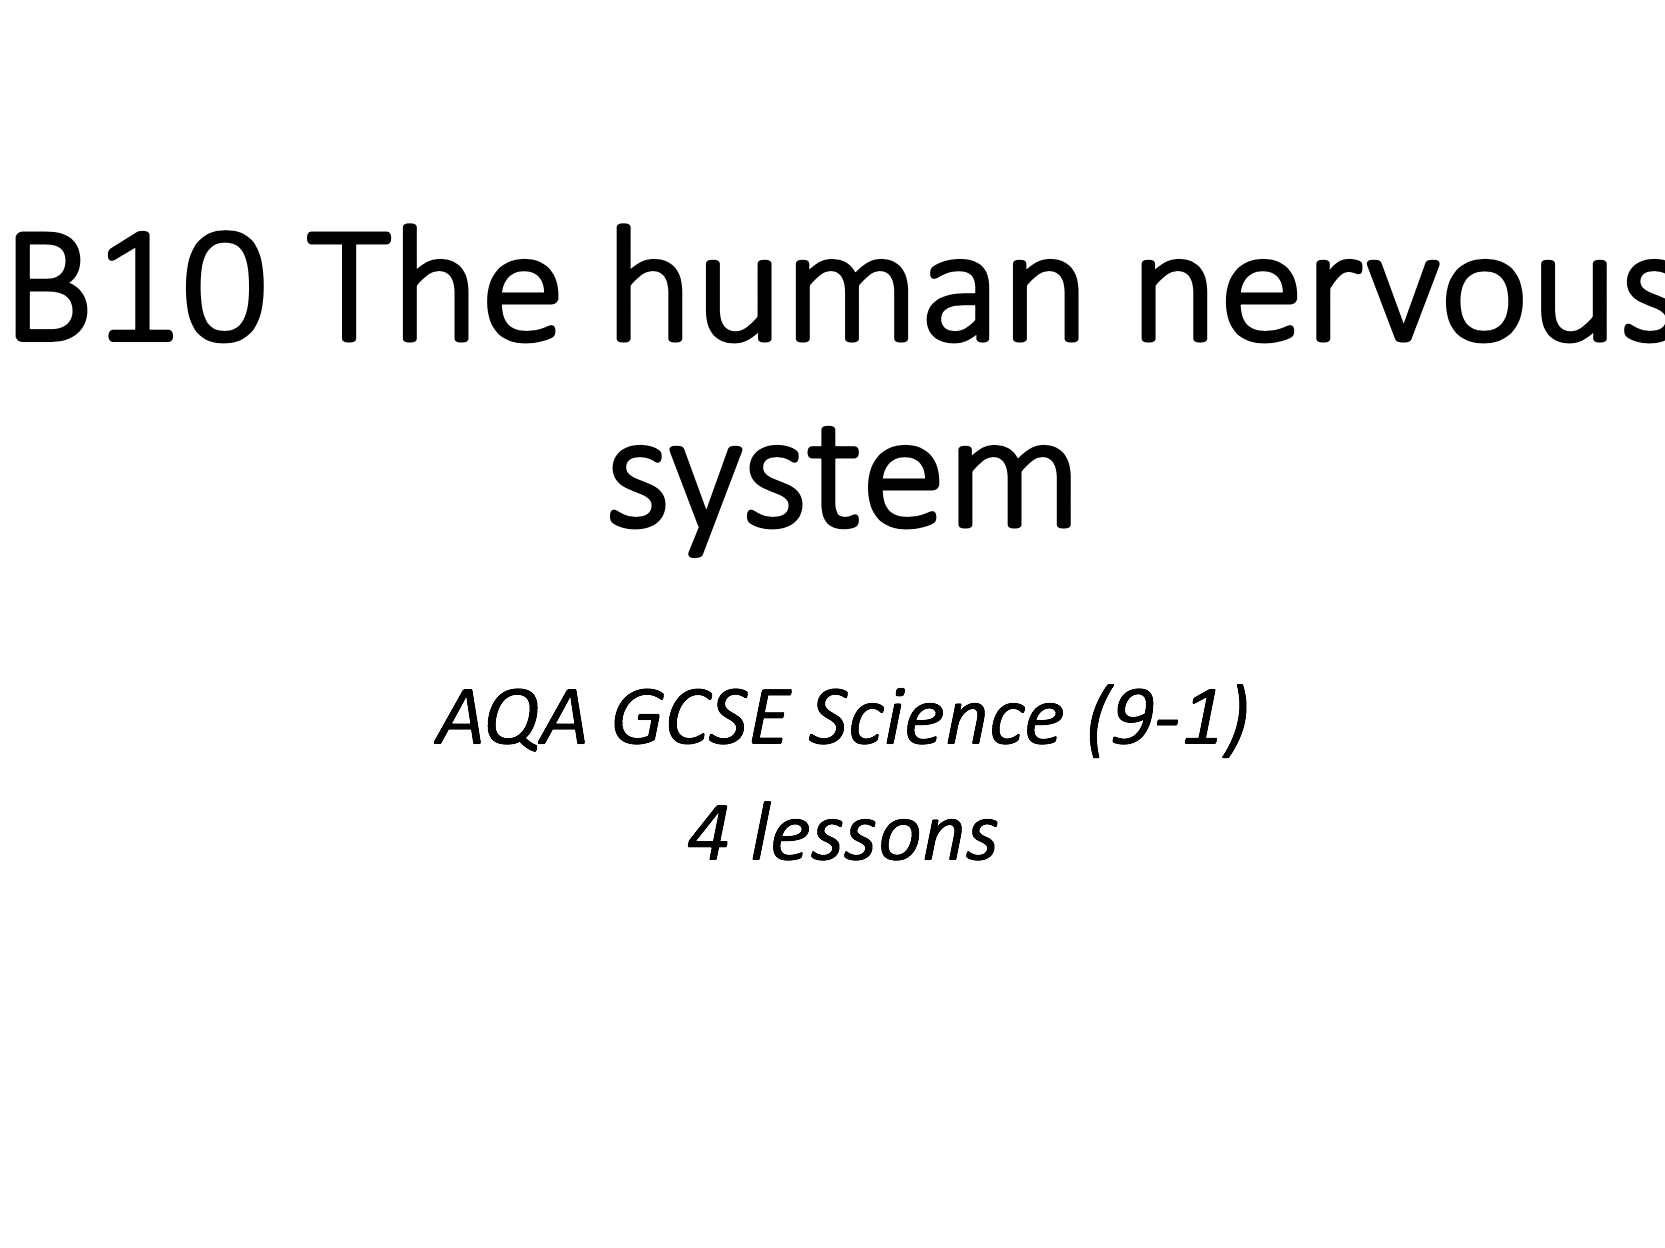 B10 The human nervous system